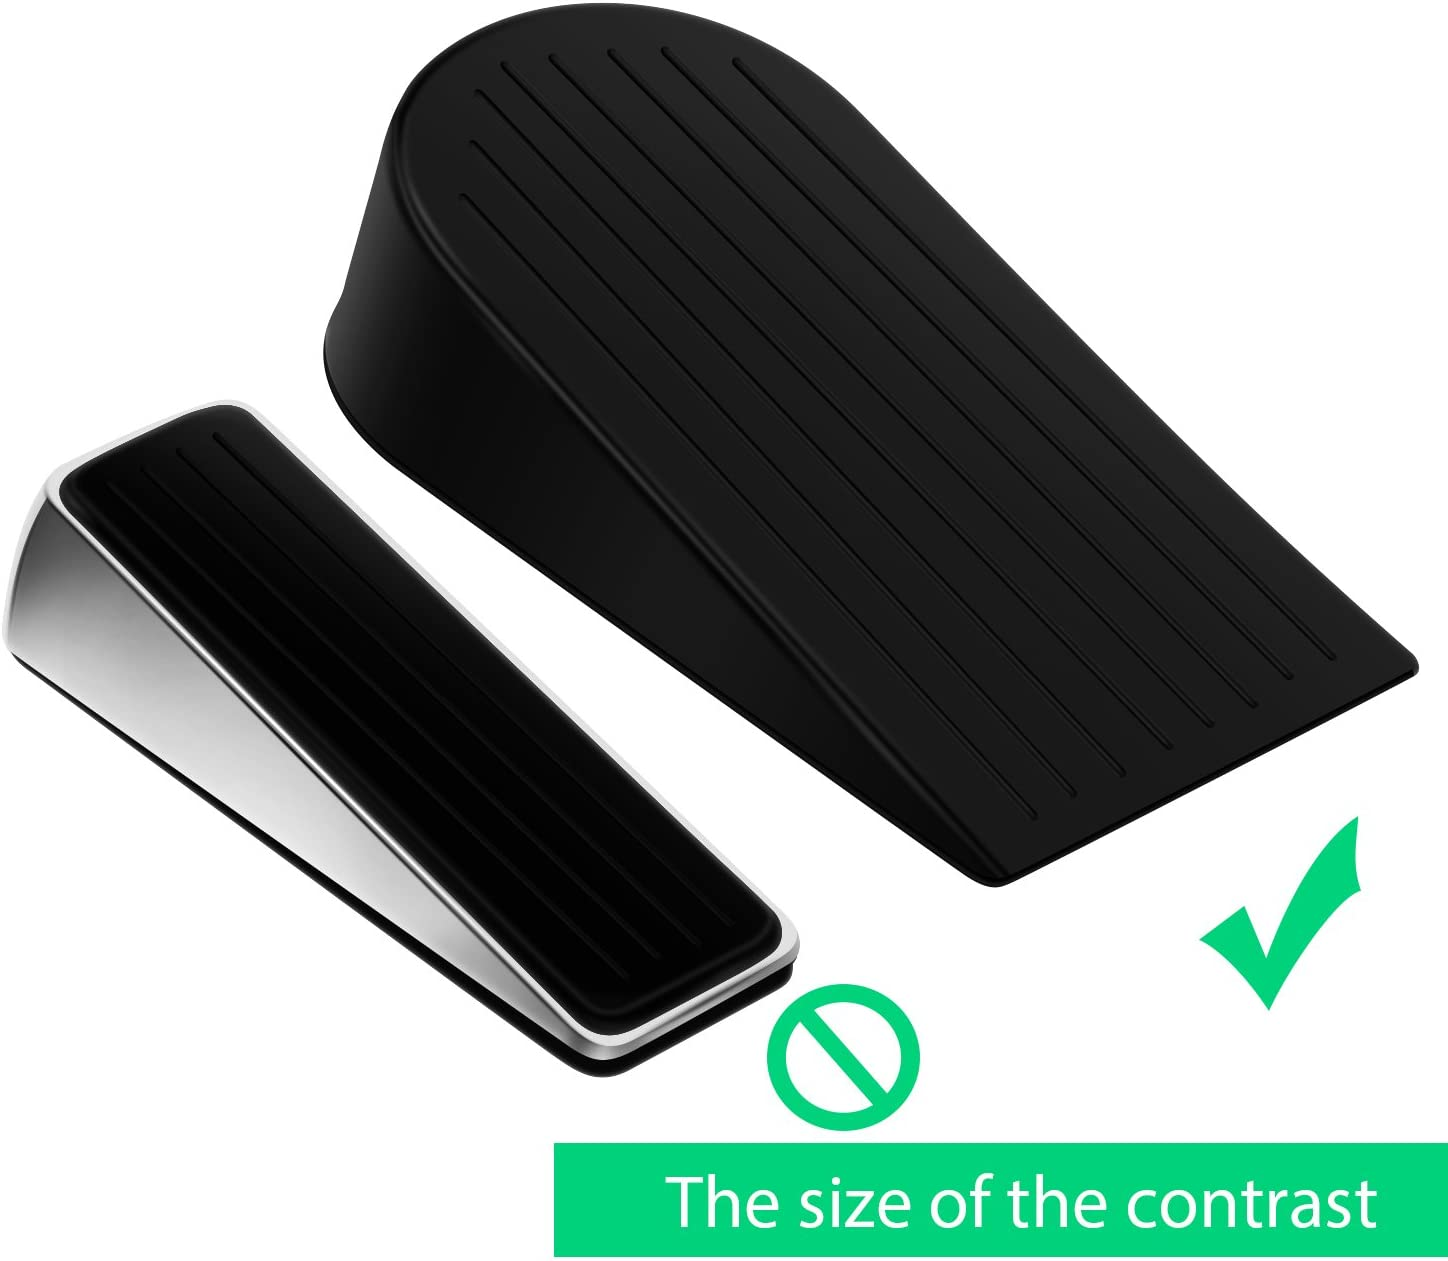 Heavy Duty Rubber Door Stop Wedge,Multi Surface Design EIOU Big Door Stopper Non-Scratching Door Stop 2 Pack